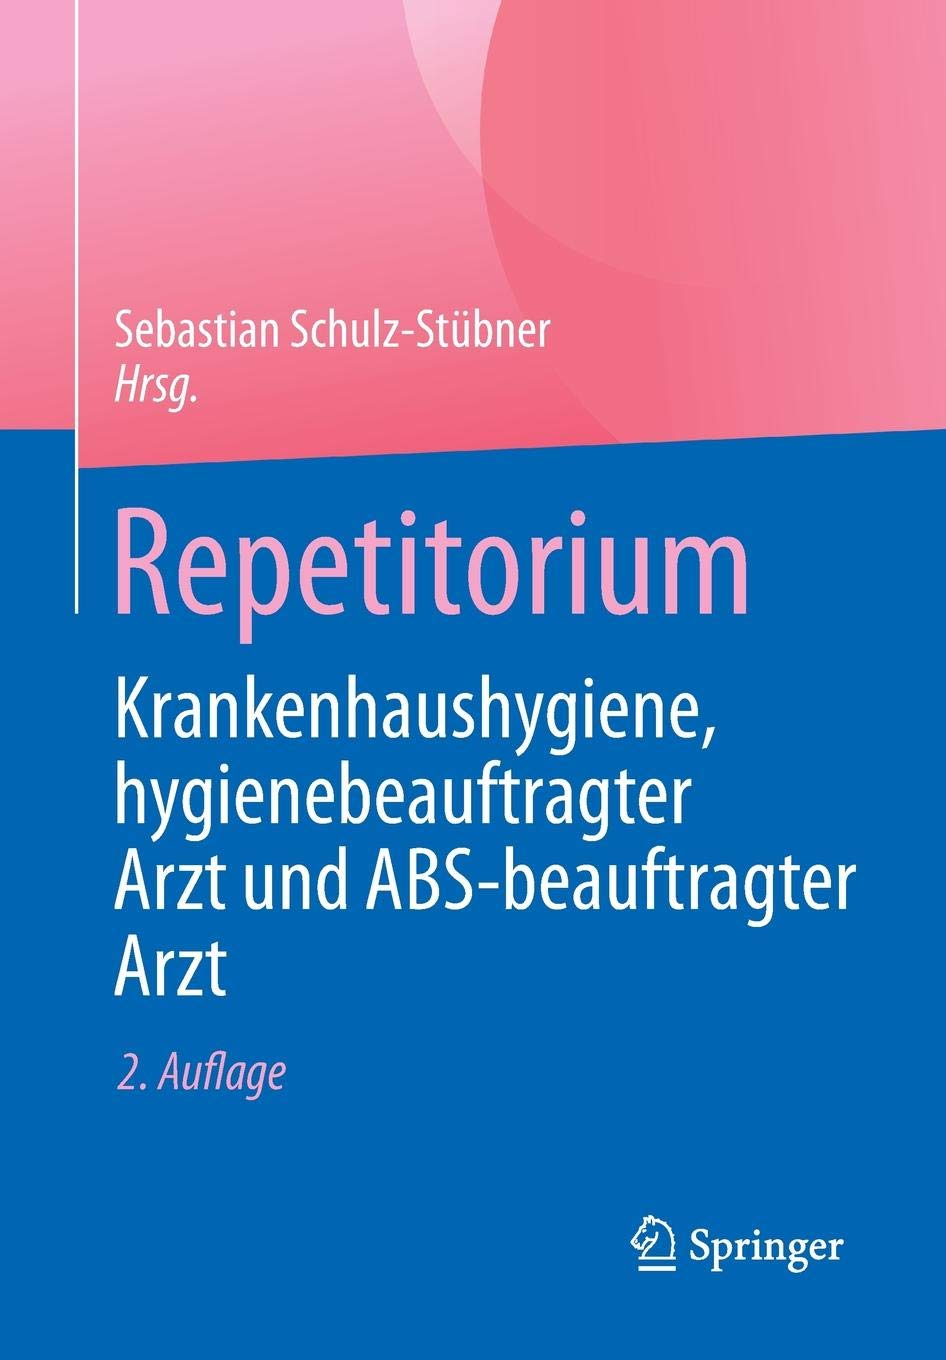 Repetitorium Krankenhaushygiene Hygienebeauftragter Arzt Und ABS Beauftragter Arzt